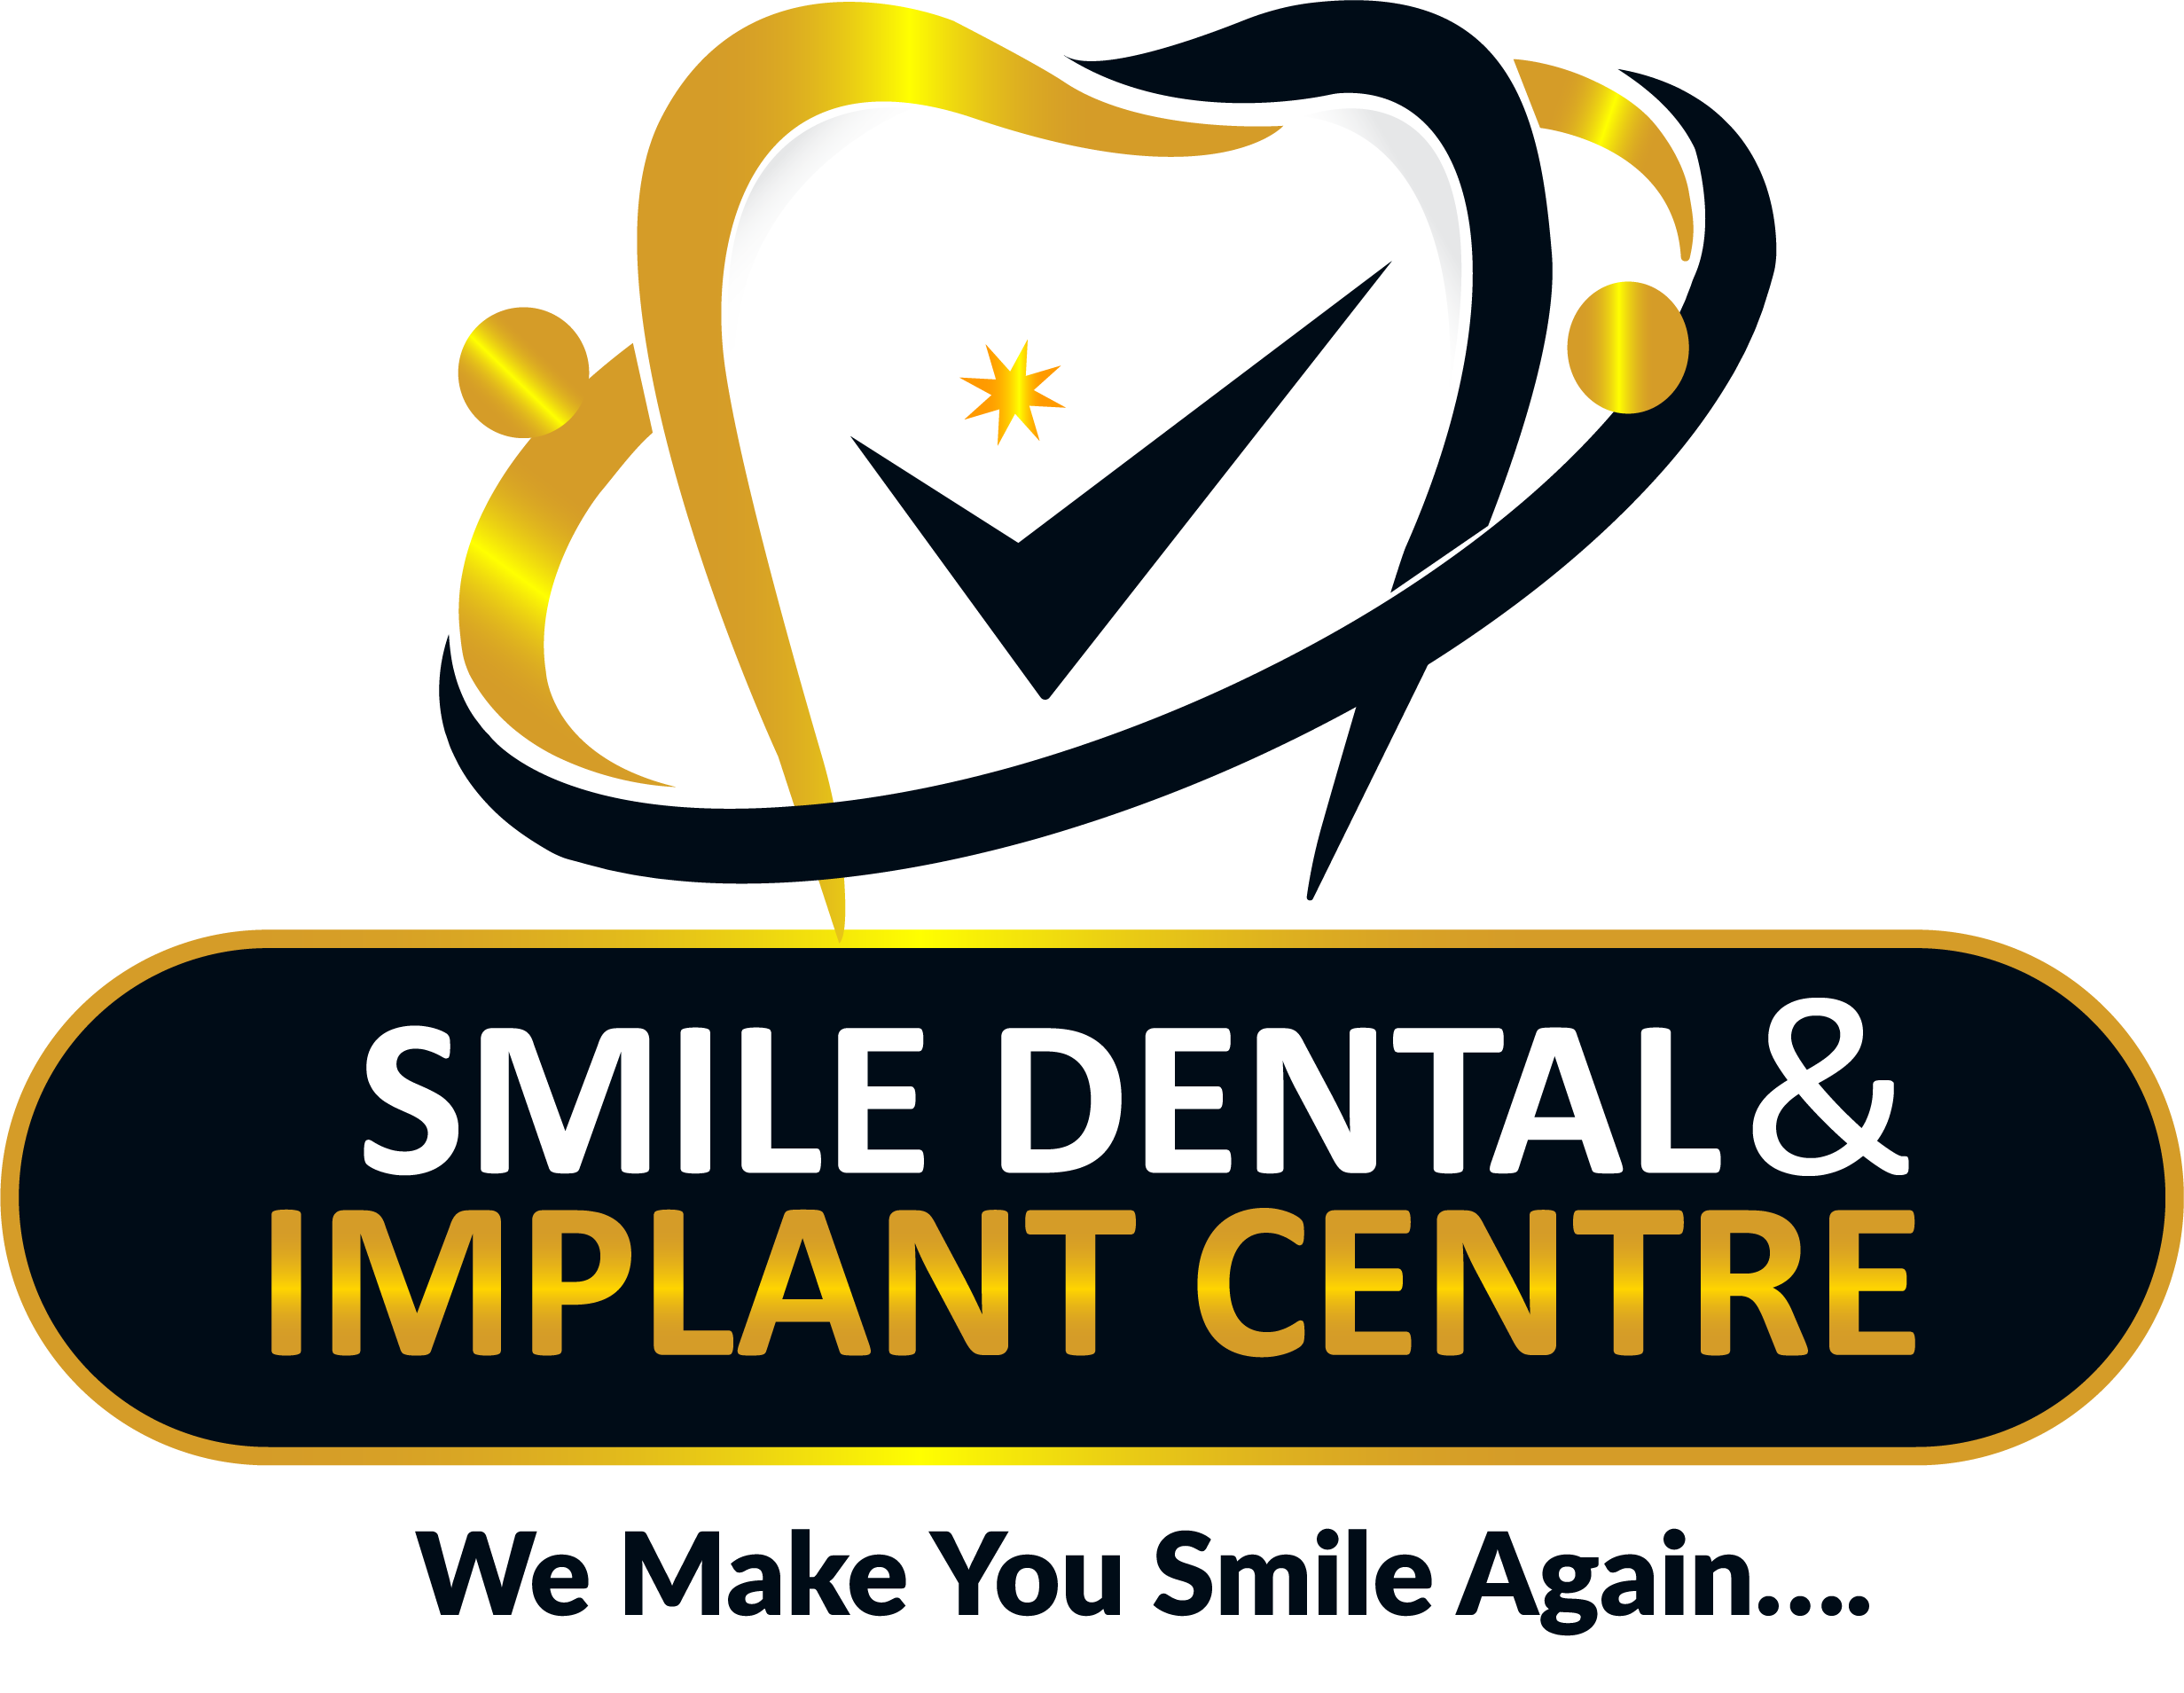 Smile Dental And Implant Centre